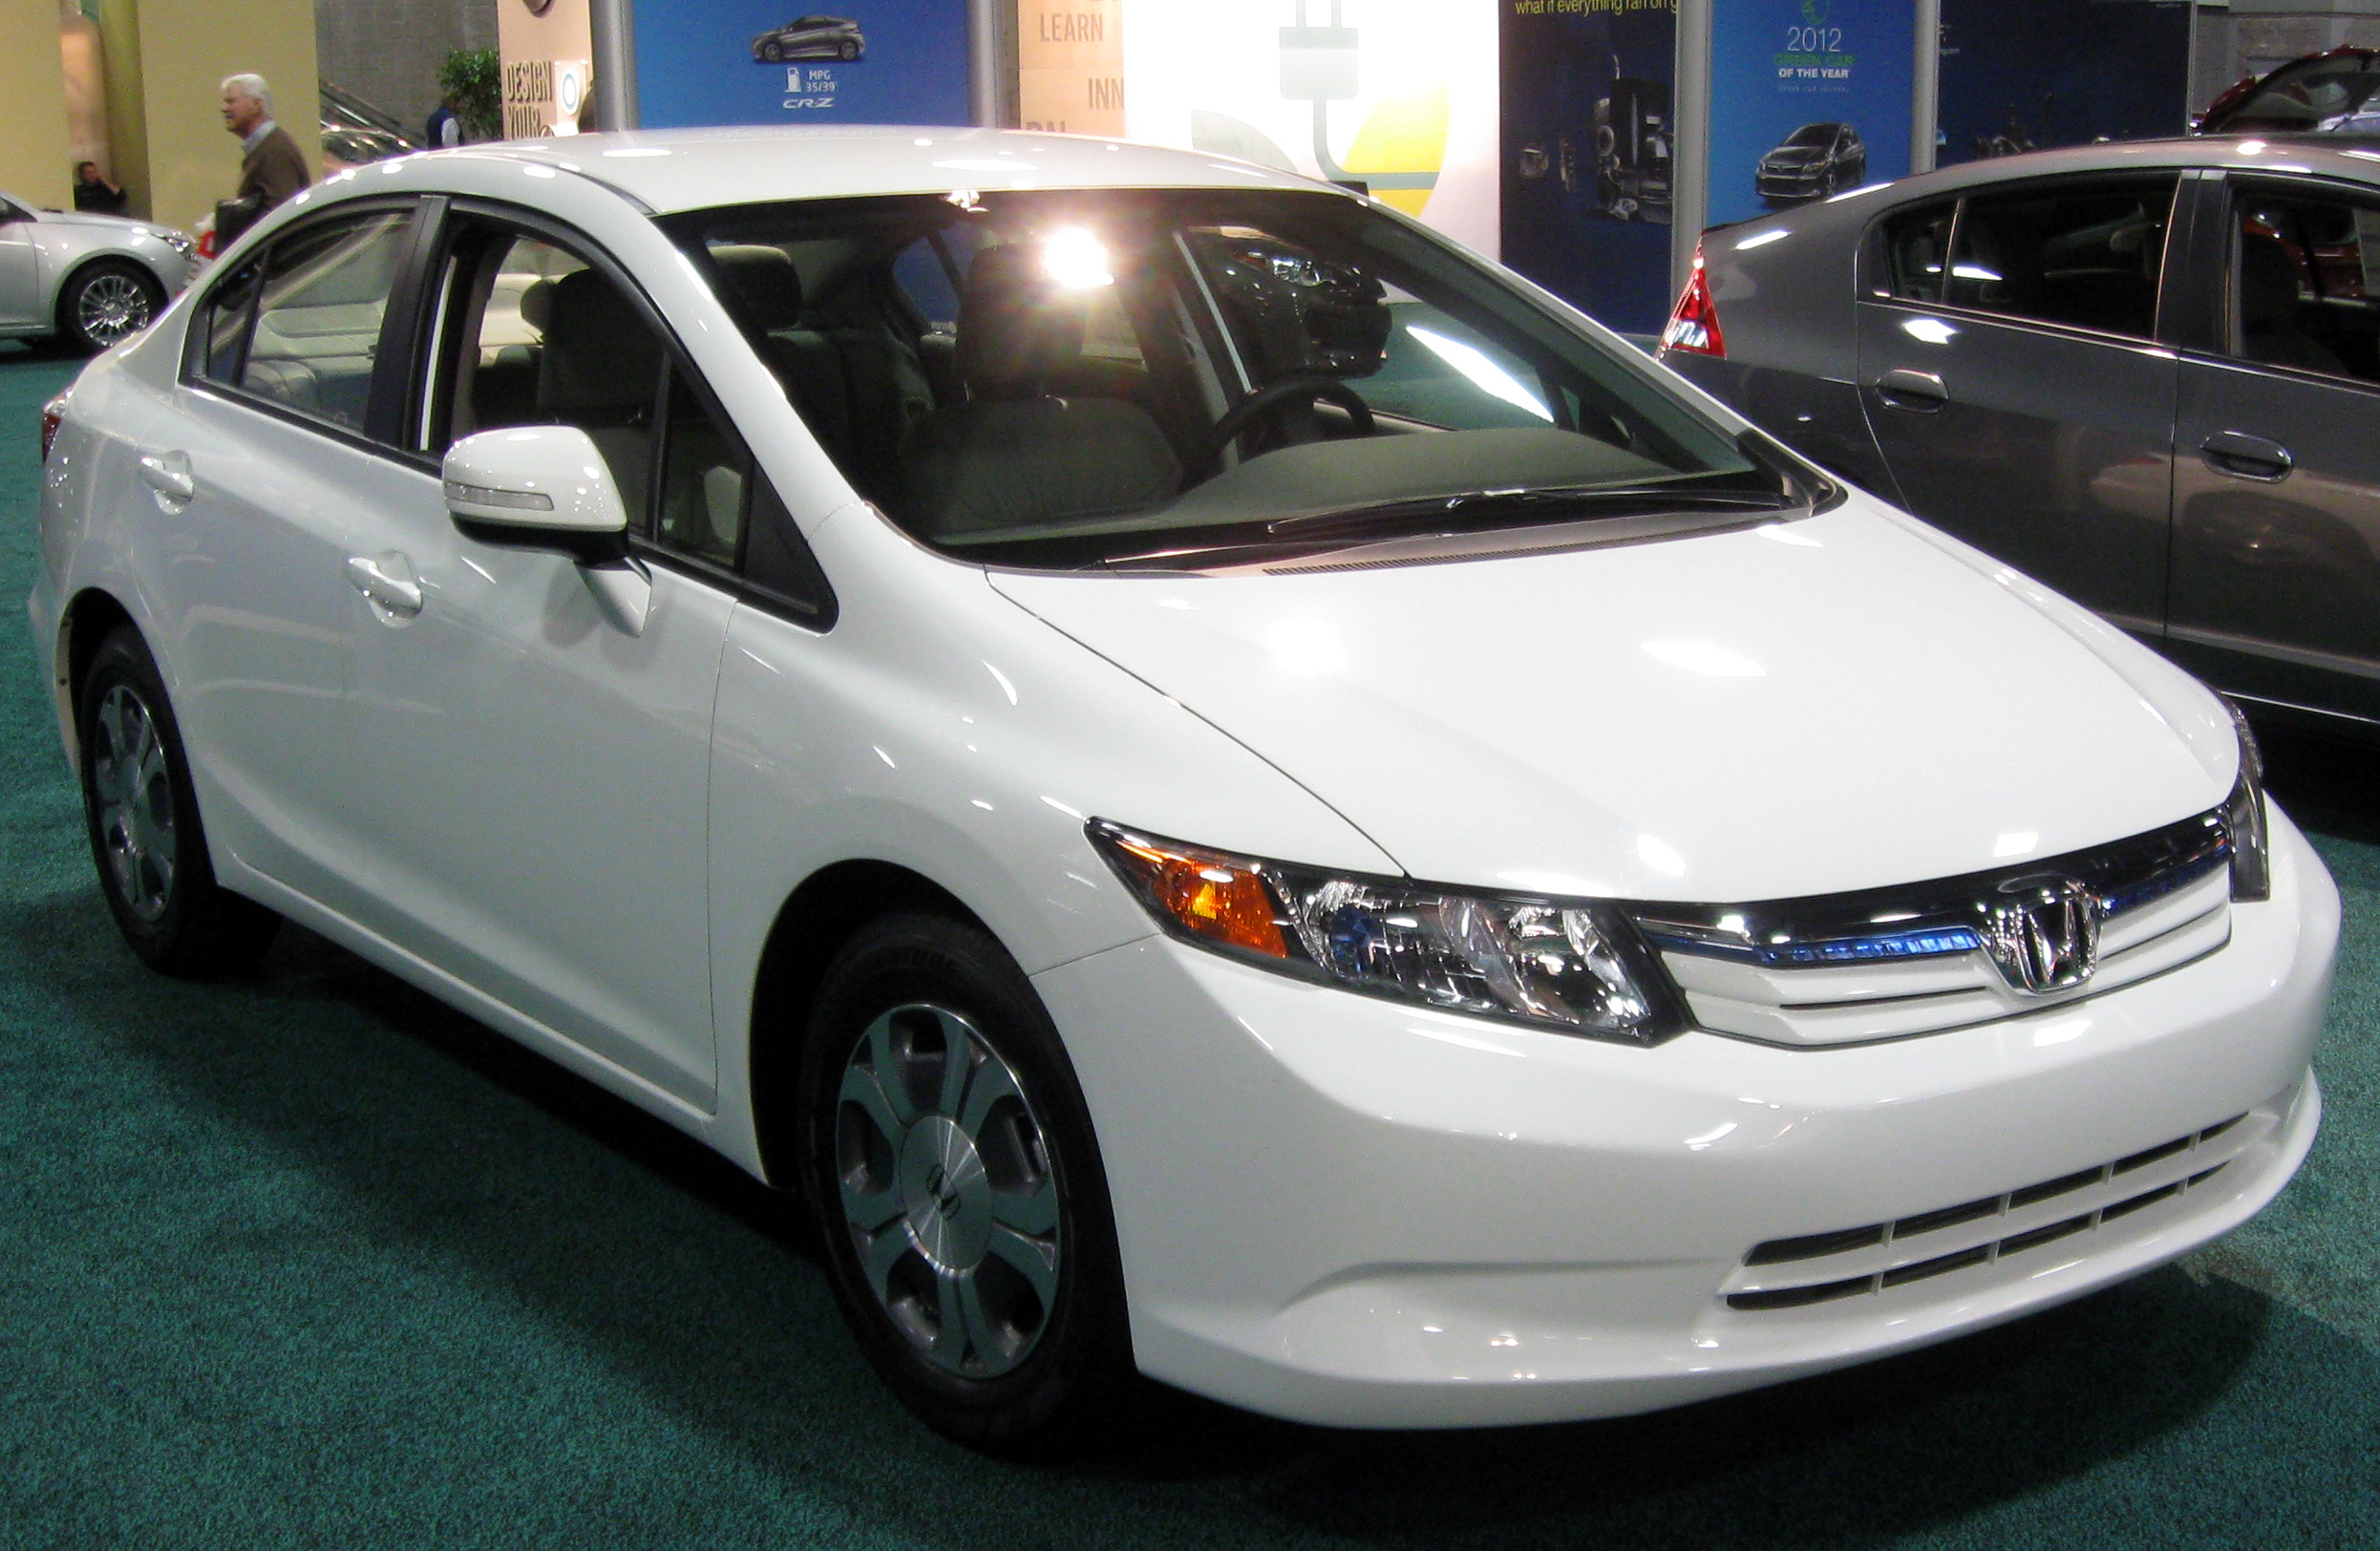 file 2012 honda civic hybrid 2012 dc jpg wikimedia. Black Bedroom Furniture Sets. Home Design Ideas